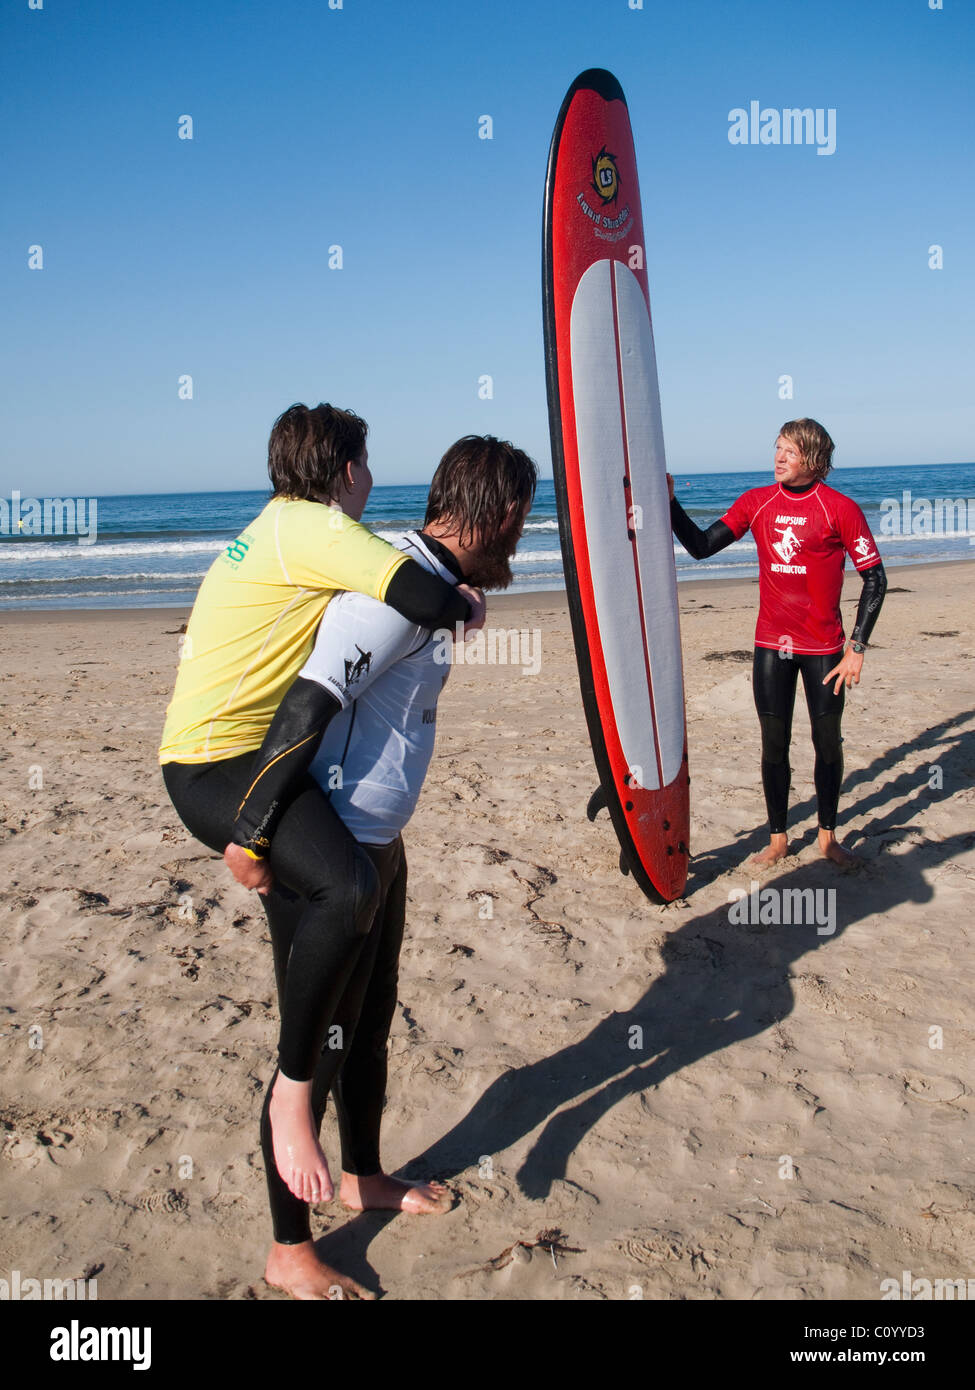 On the beach in Pismo Beach, California, during the Surf Clinic sponsored by AmpSurf. - Stock Image